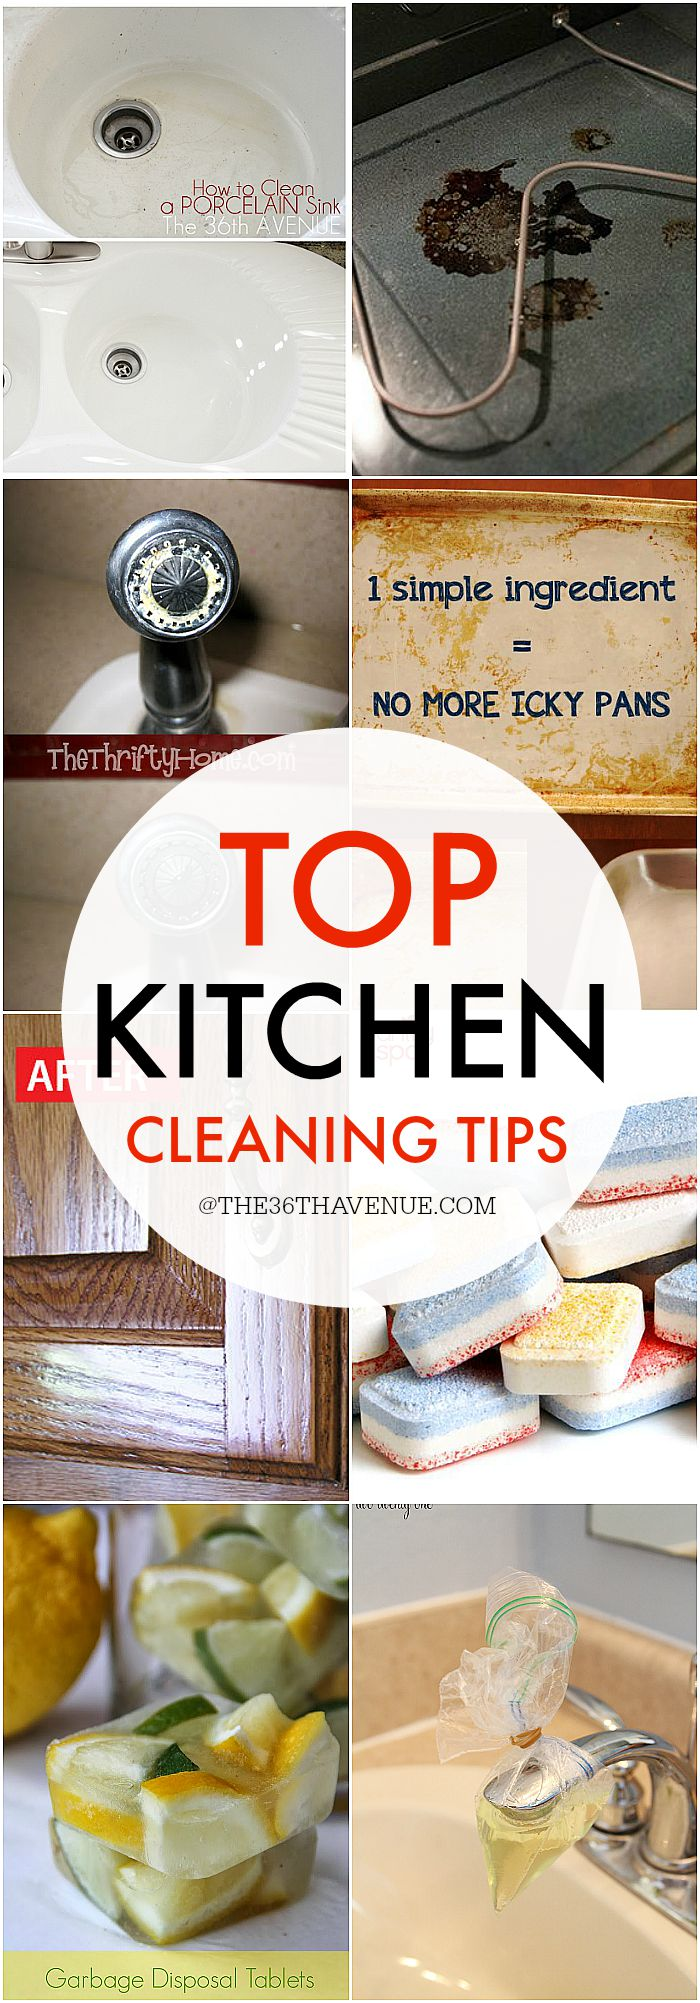 Top Kitchen Cleaning Tips - PIN IT NOW AND CLEAN LATER!